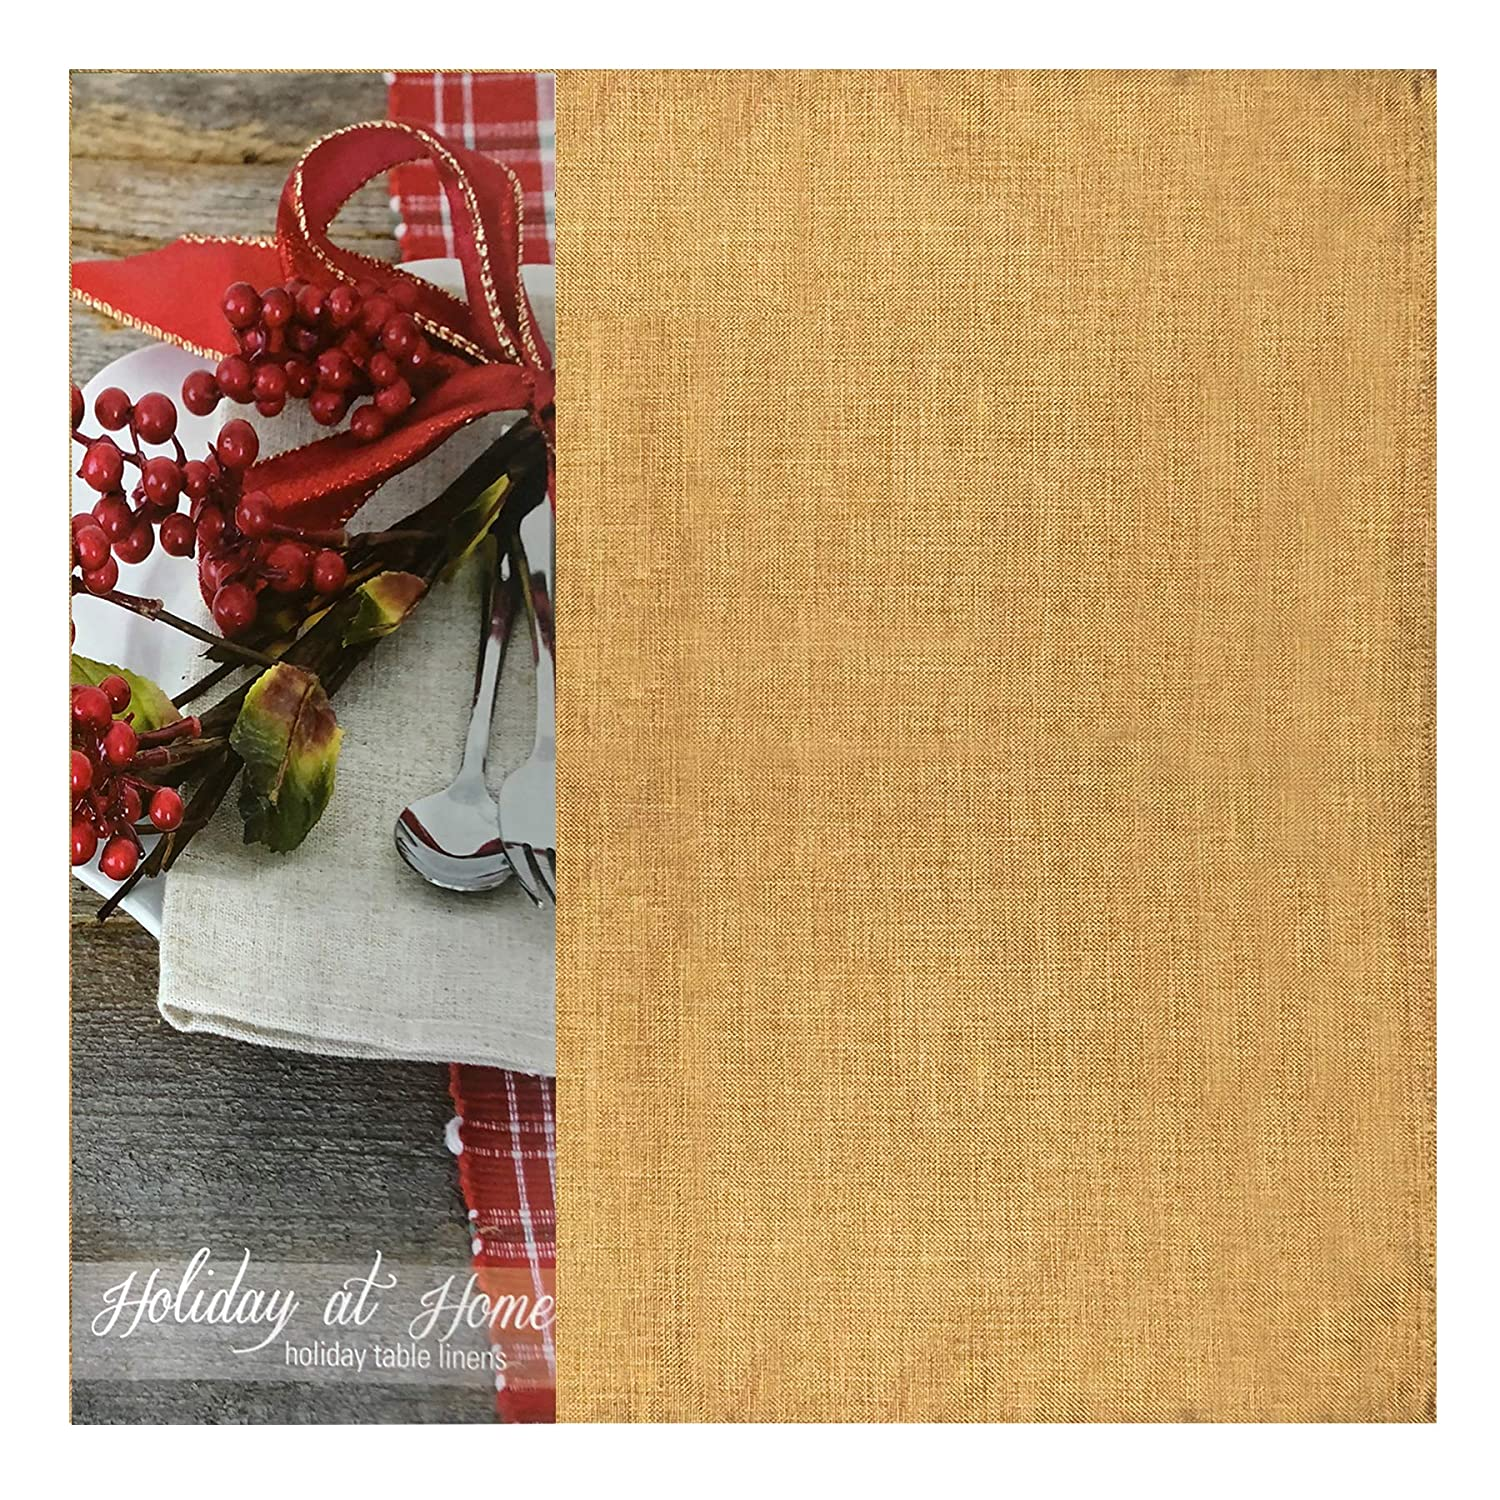 52 X 70 Oblong Gold Newbridge Penington Solid Woven No-Iron Soil Resistant Fabric Tablecloth